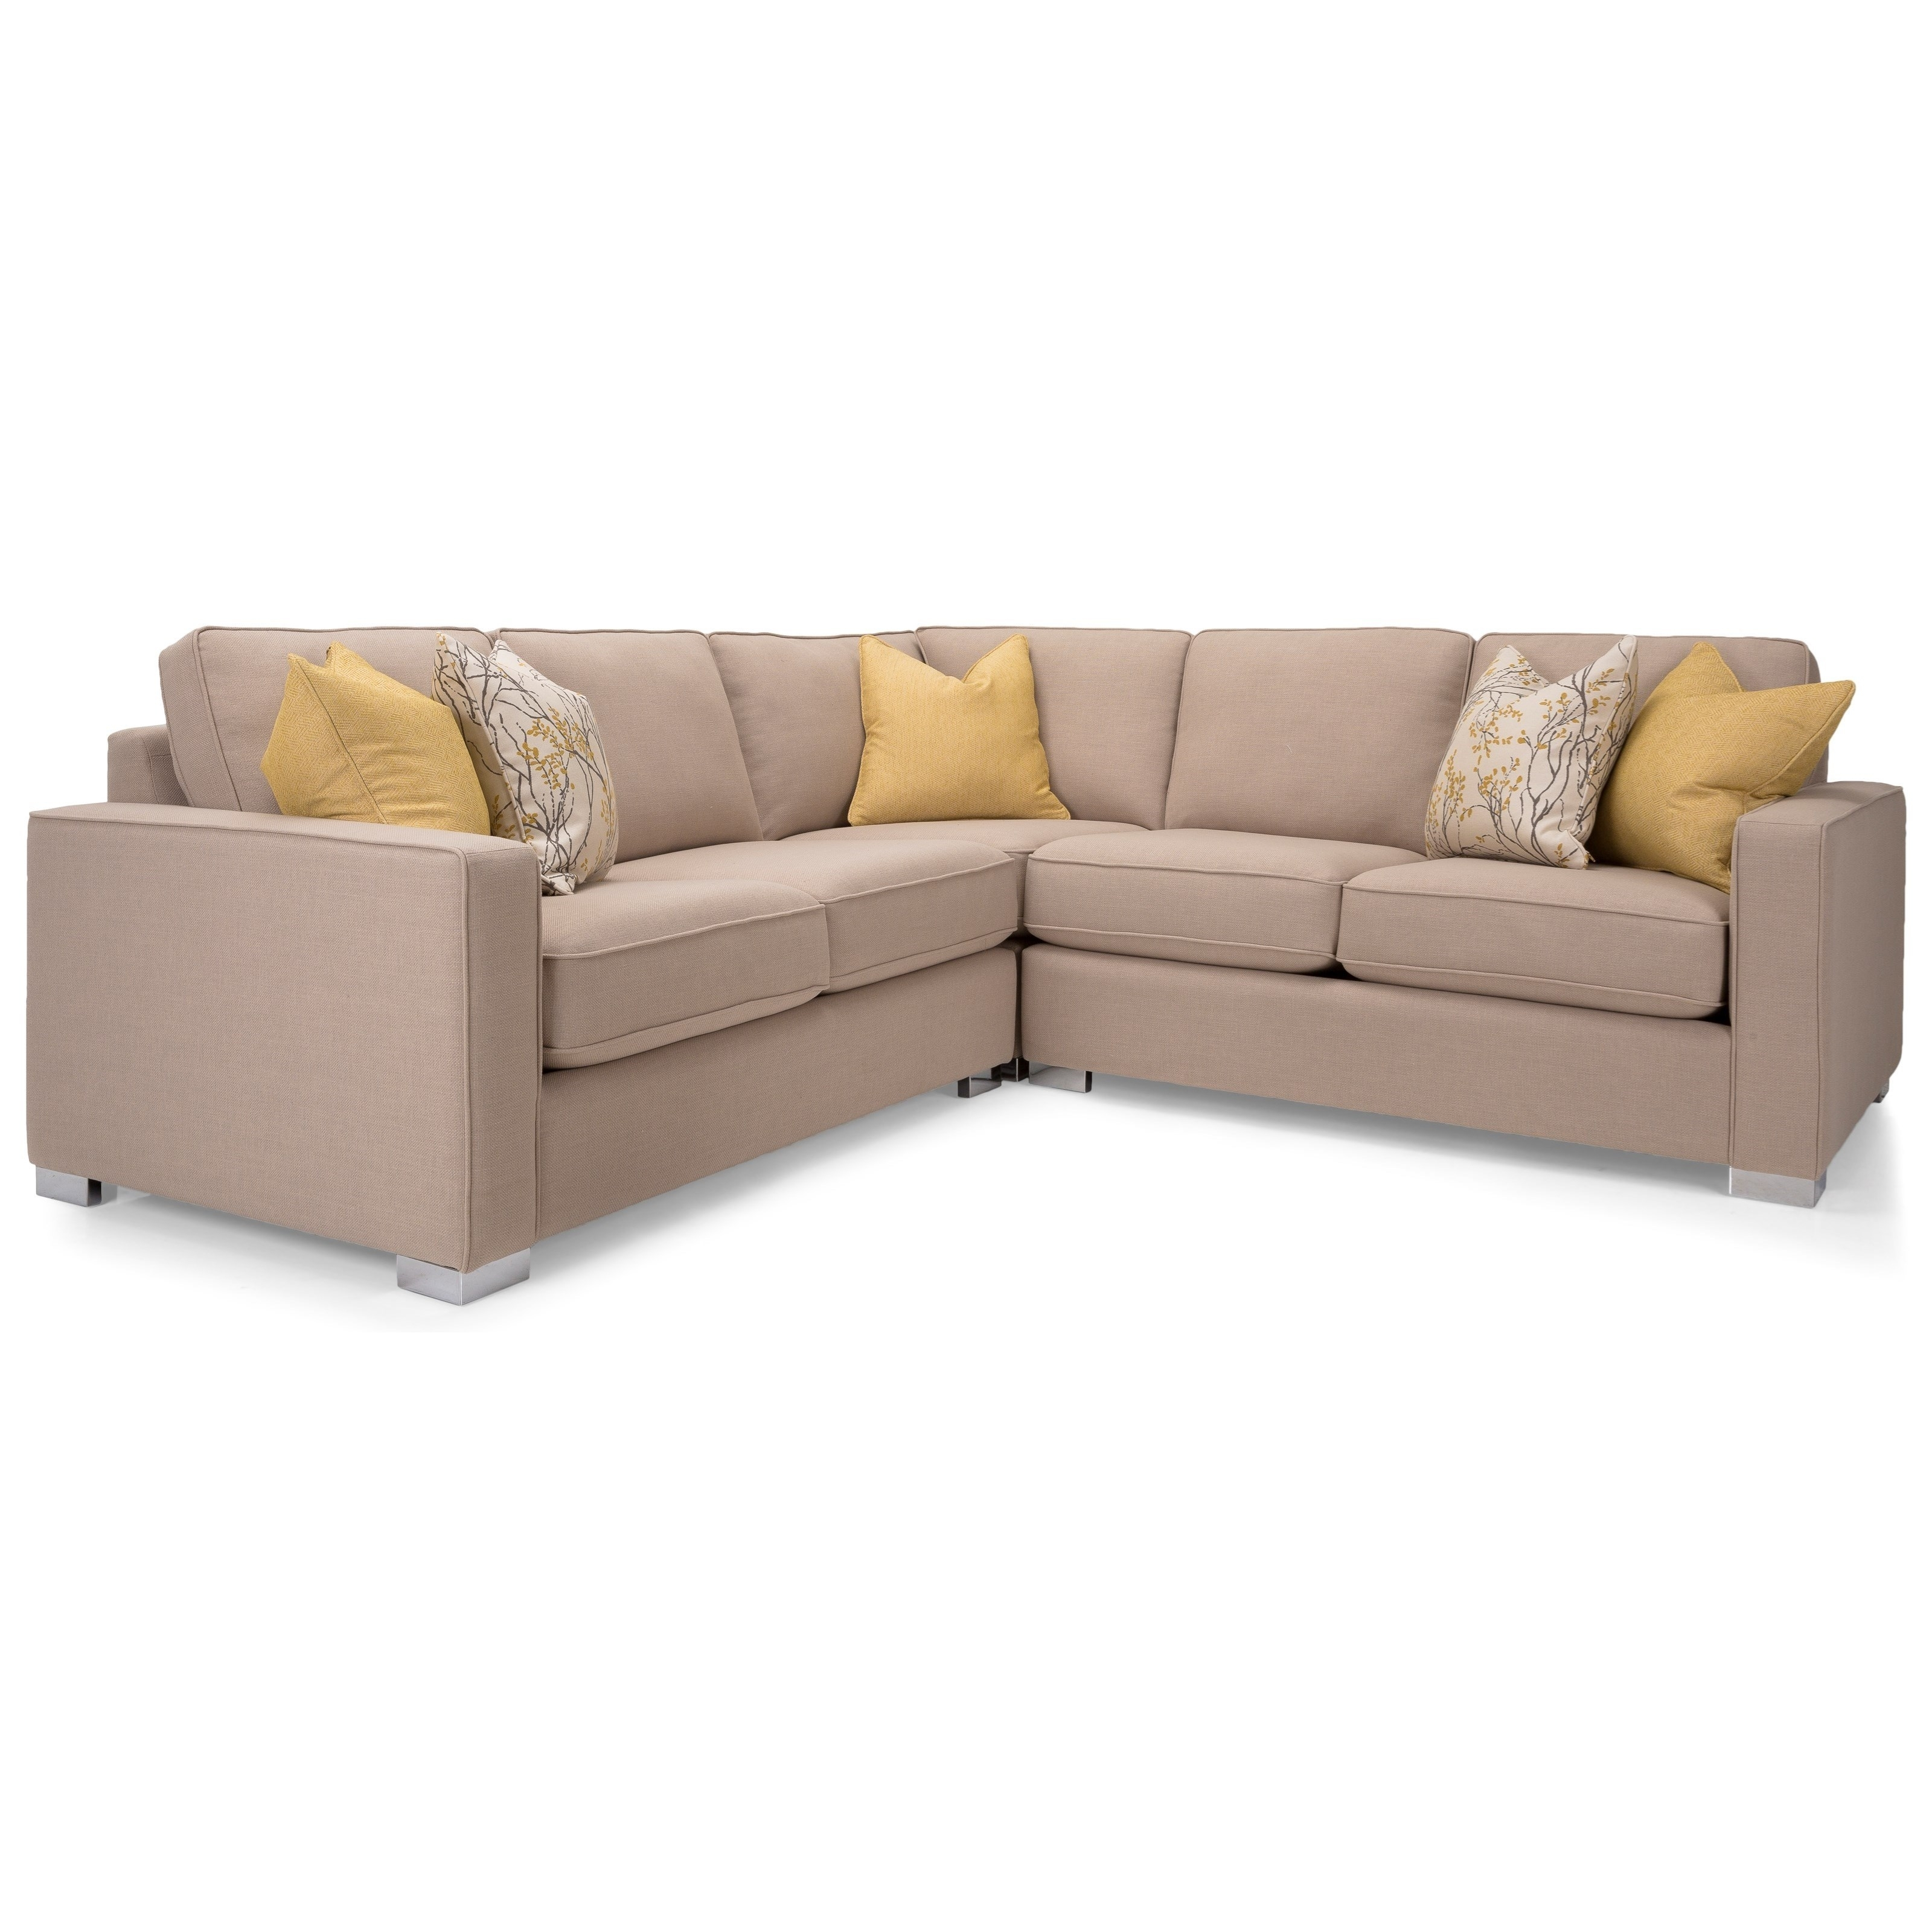 Decor-Rest 7743 Three Piece Corner Sectional Sofa | Stoney Creek within Vaughan Sectional Sofas (Image 2 of 10)